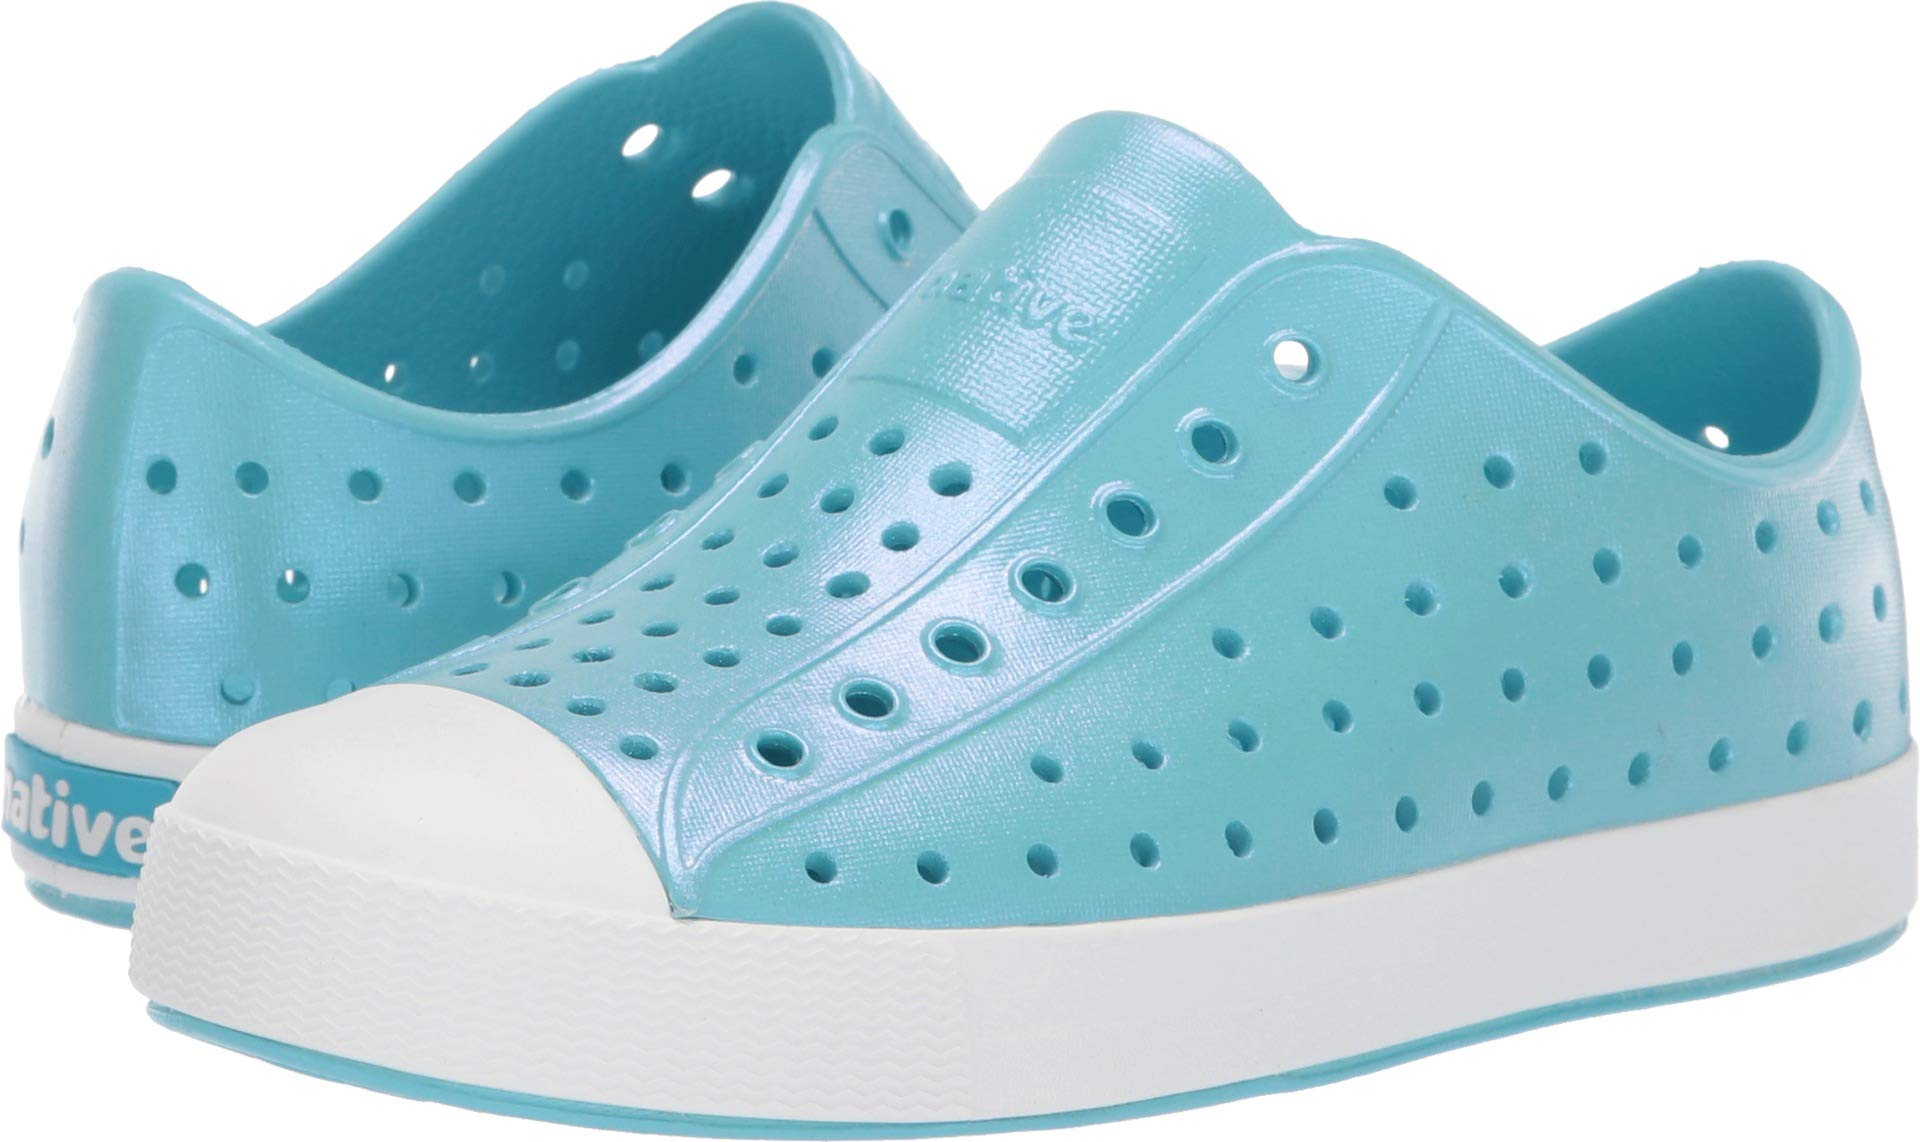 Native Kids Shoes Girl's Jefferson Iridescent (Little Kid) Hamachi Blue/Shell White/Galaxy Iridescent 2 M US Little Kid